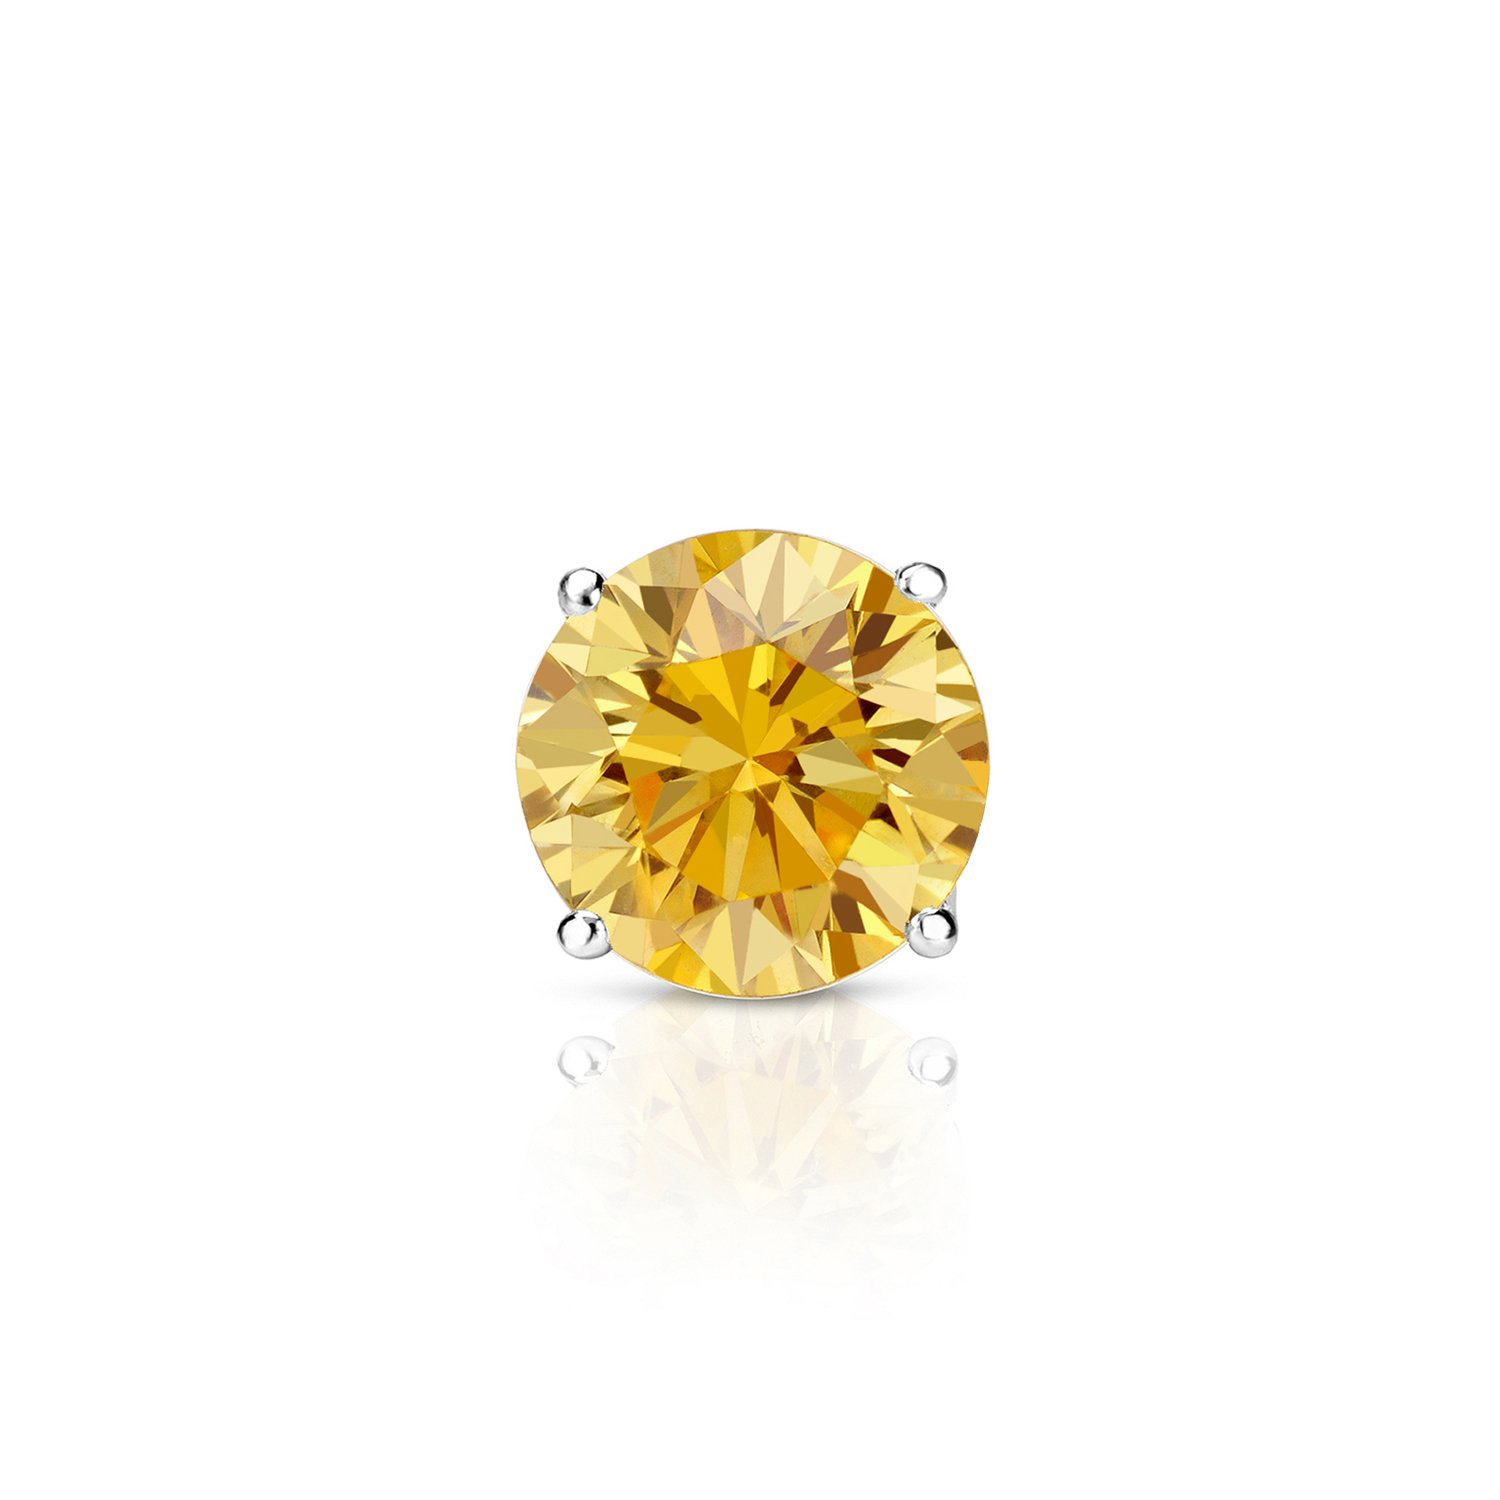 14k White Gold Round Yellow Diamond 4-Prong Basket SINGLE STUD Earring (1/2 ct, Yellow, I1-I2)